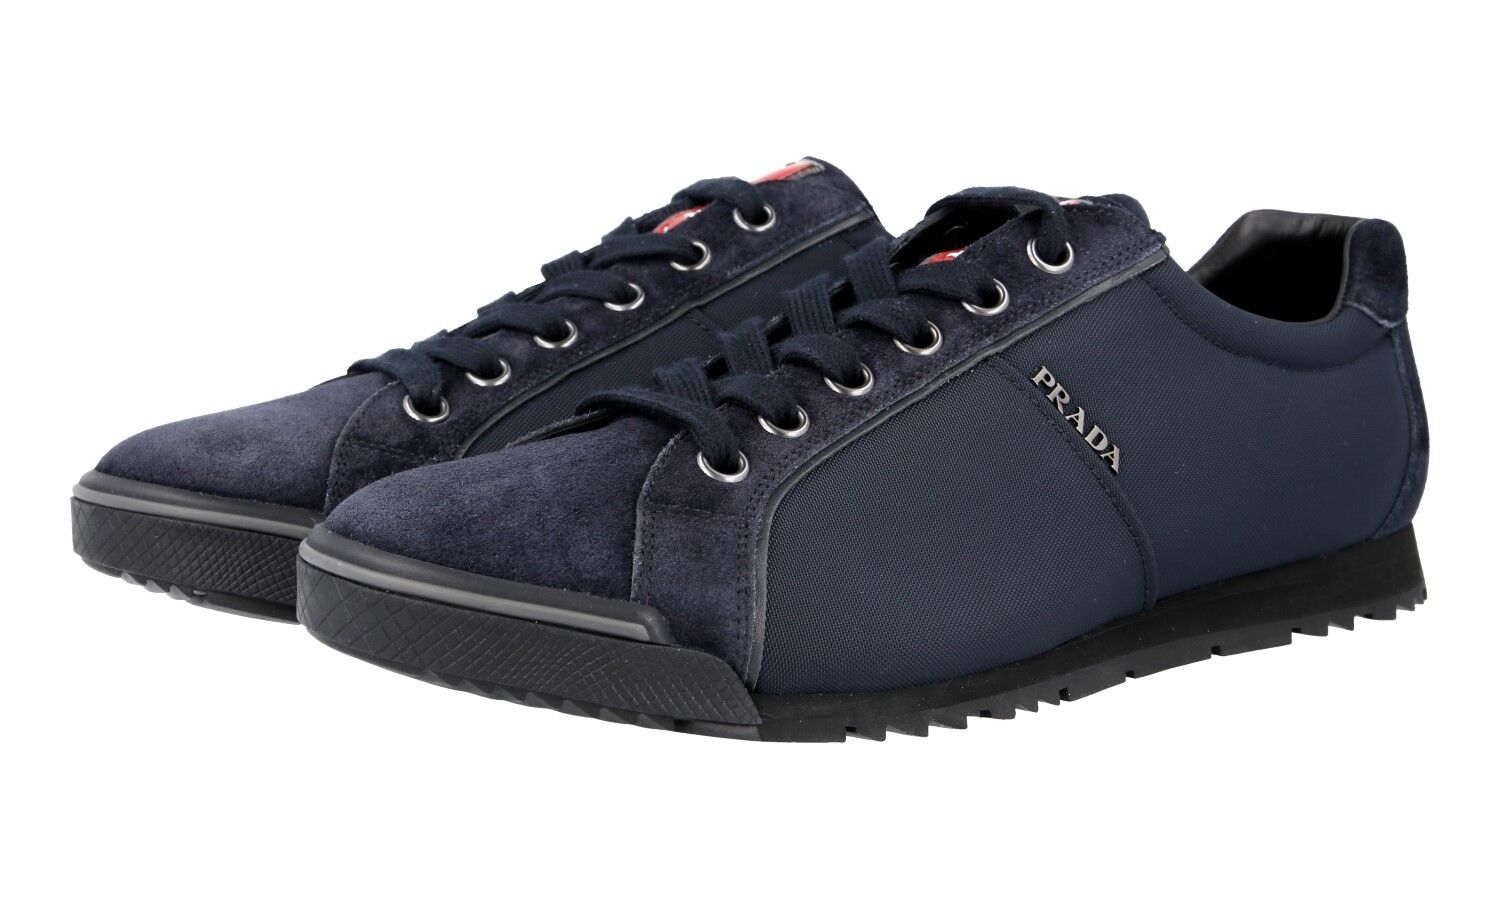 quality design cef98 88efb shoes PRADA LUSSO 4E2719 NUOVE 41 41,5 7 blue nnrwuj5020-Men s Athletic  Shoes